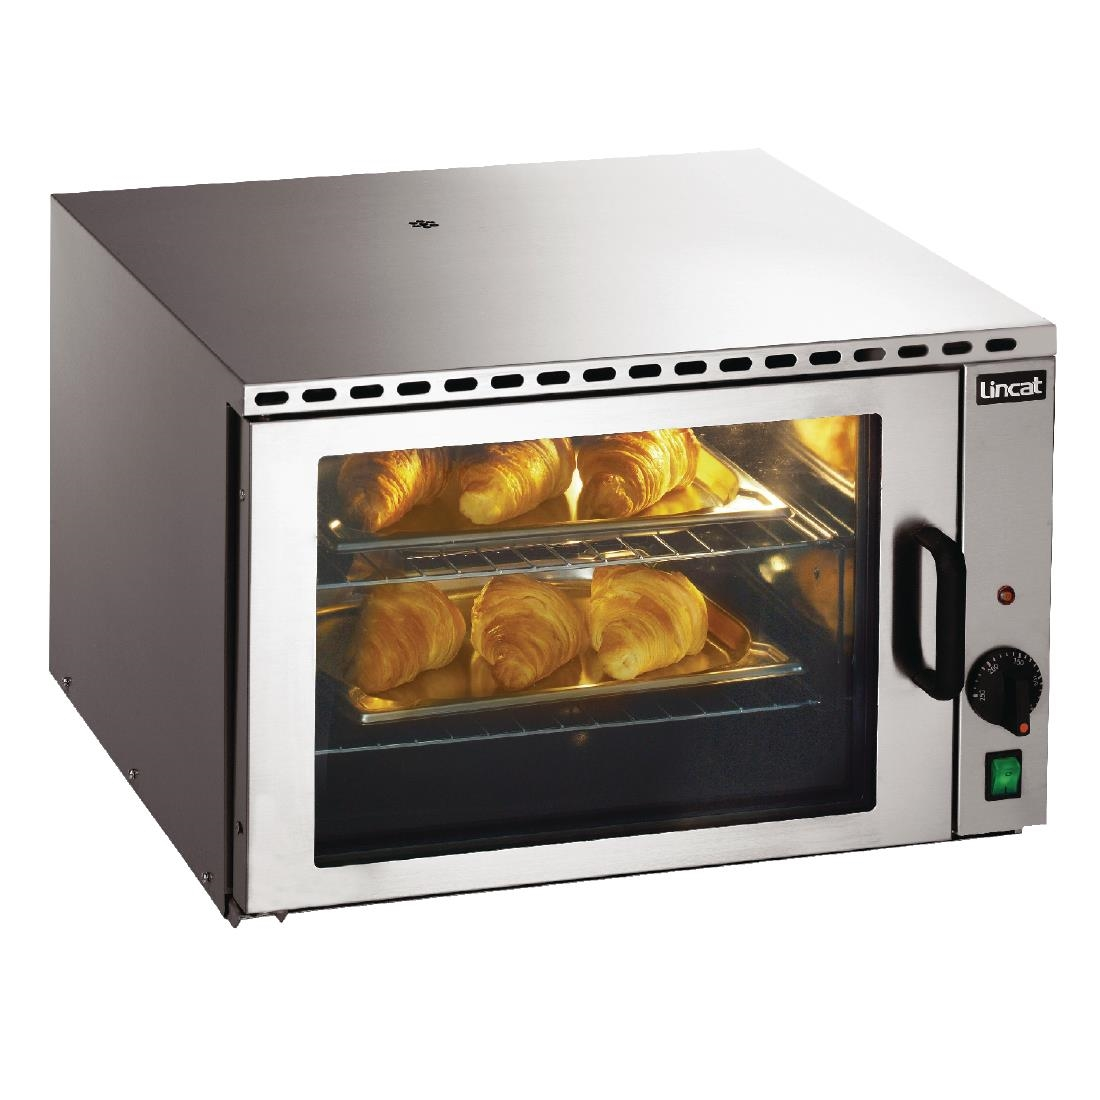 Lincat Lynx 400 Convection Oven Lco Cb998 Buy Online At Nisbets Countertop Wiring Diagram Electric